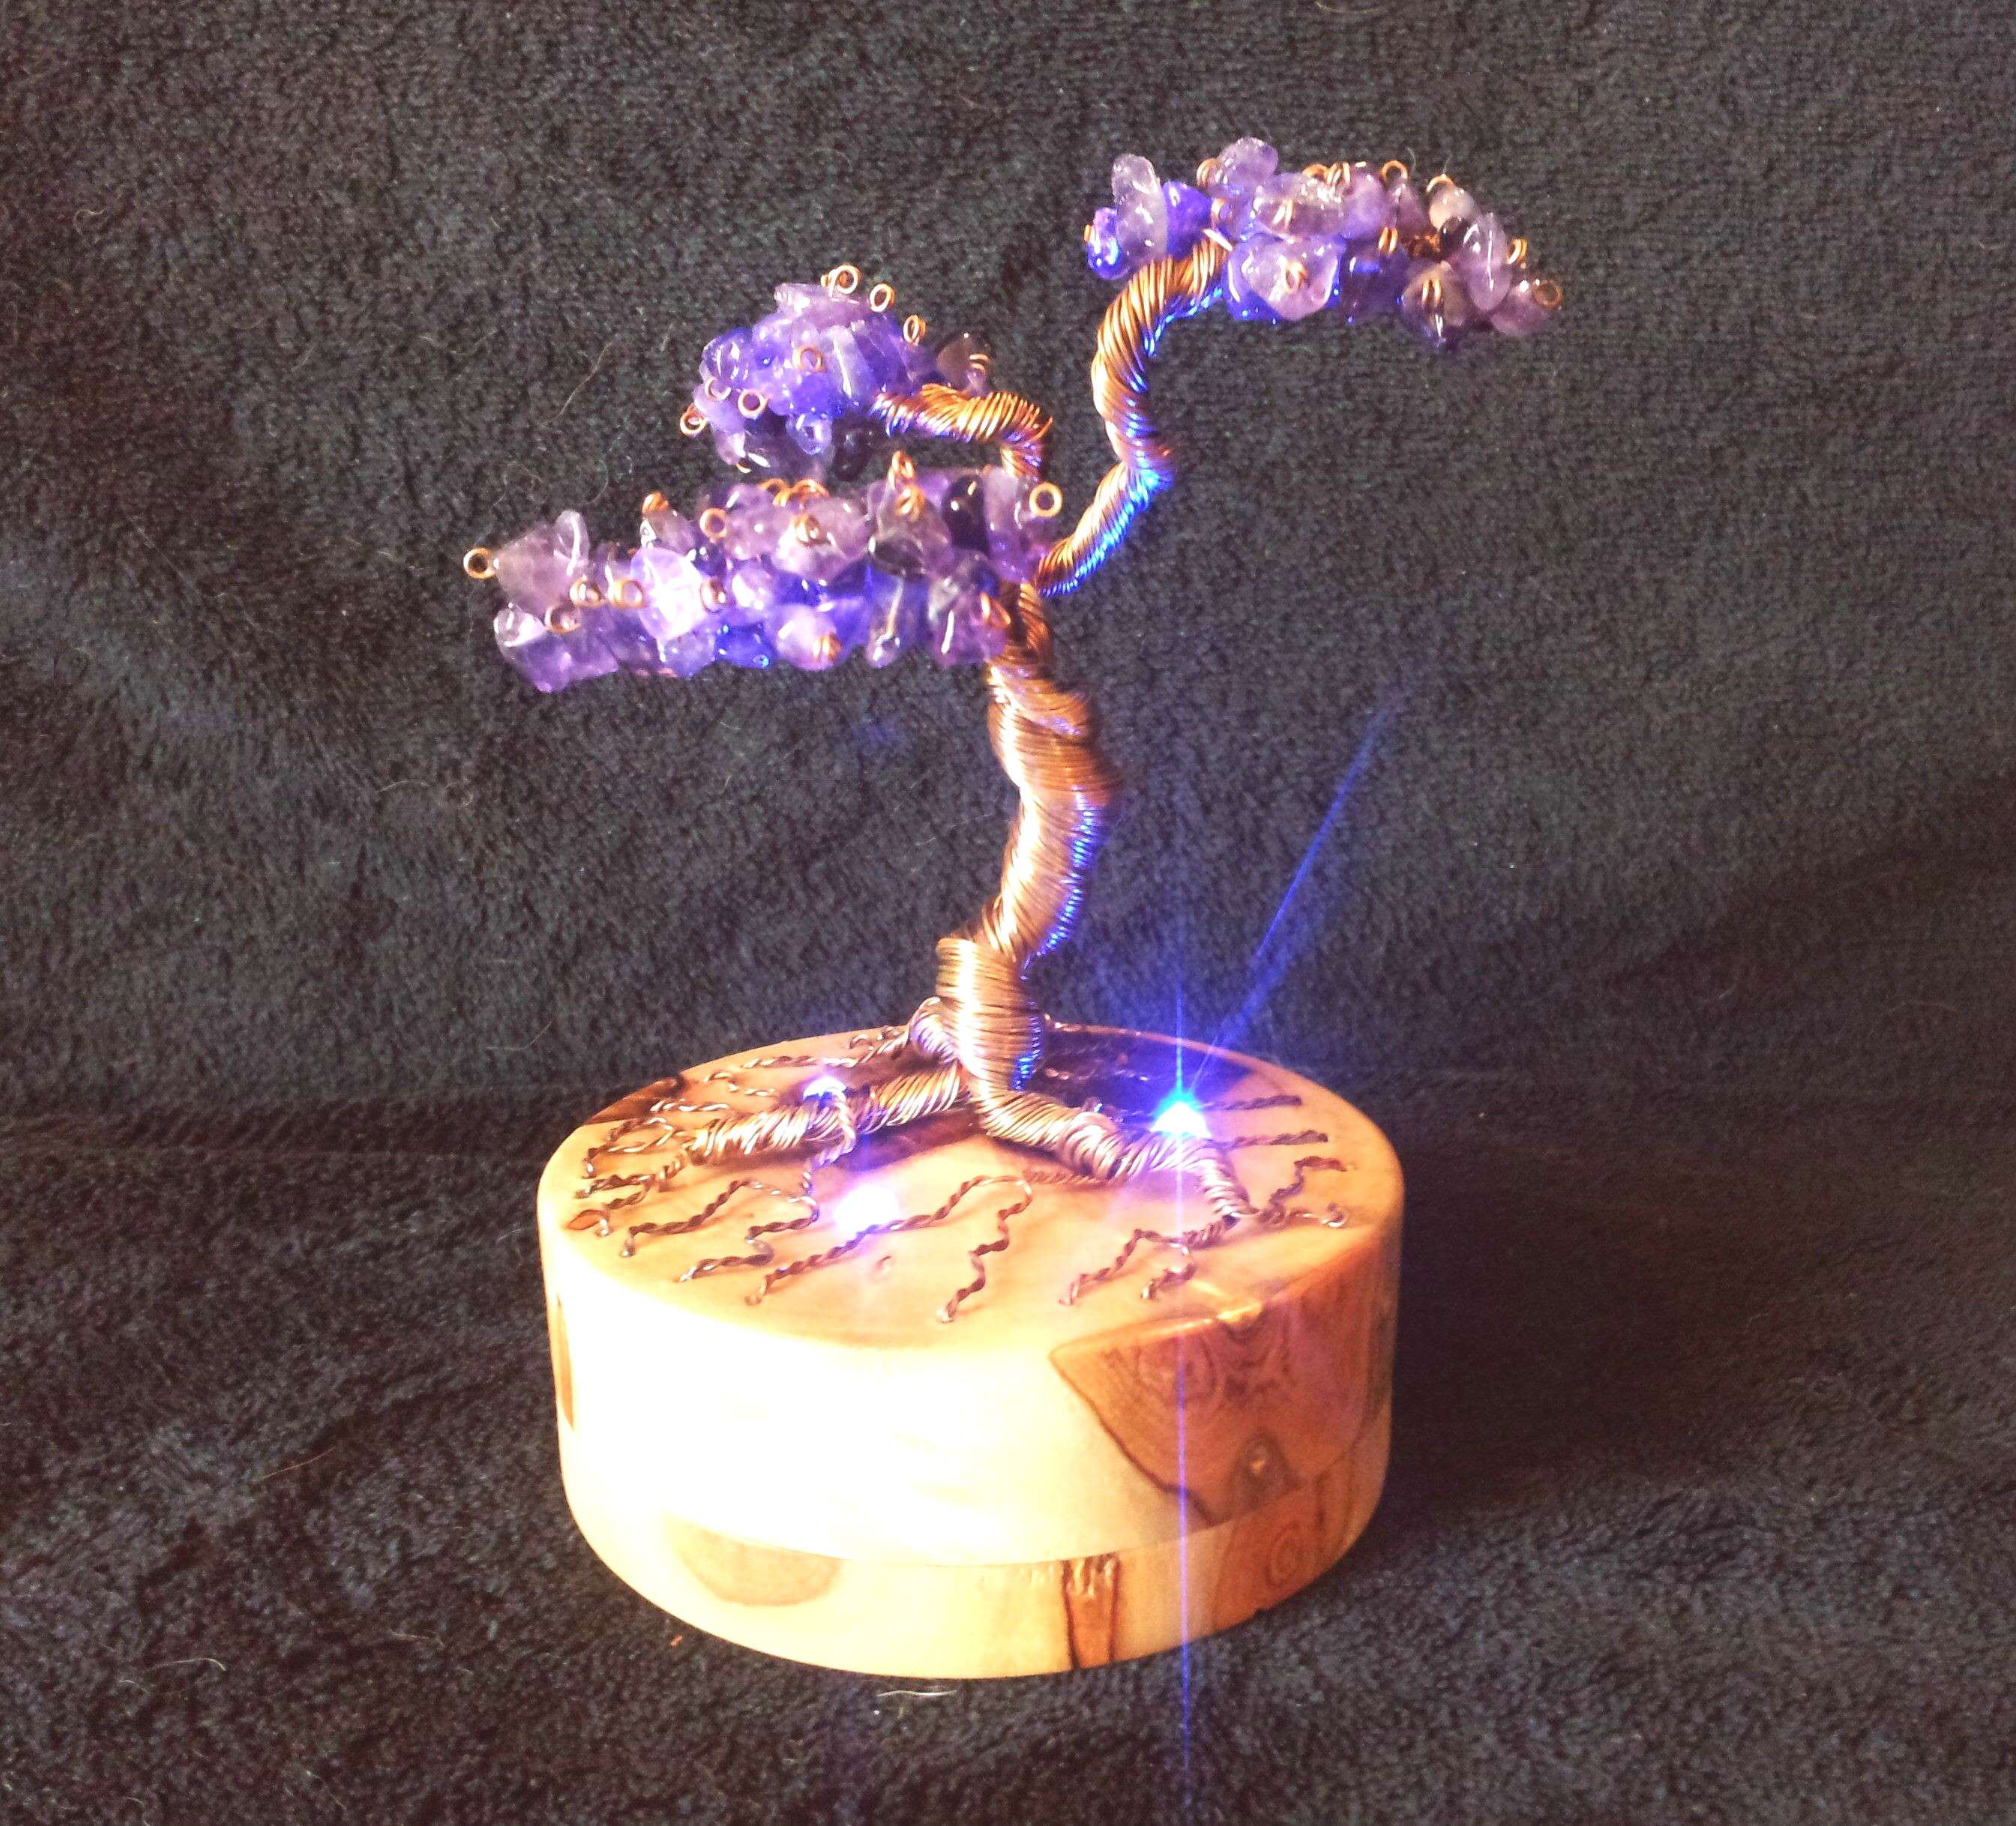 Excited to share this item from my shop: Amethyst Bonsai Tree Night Light with a laurel wood base a